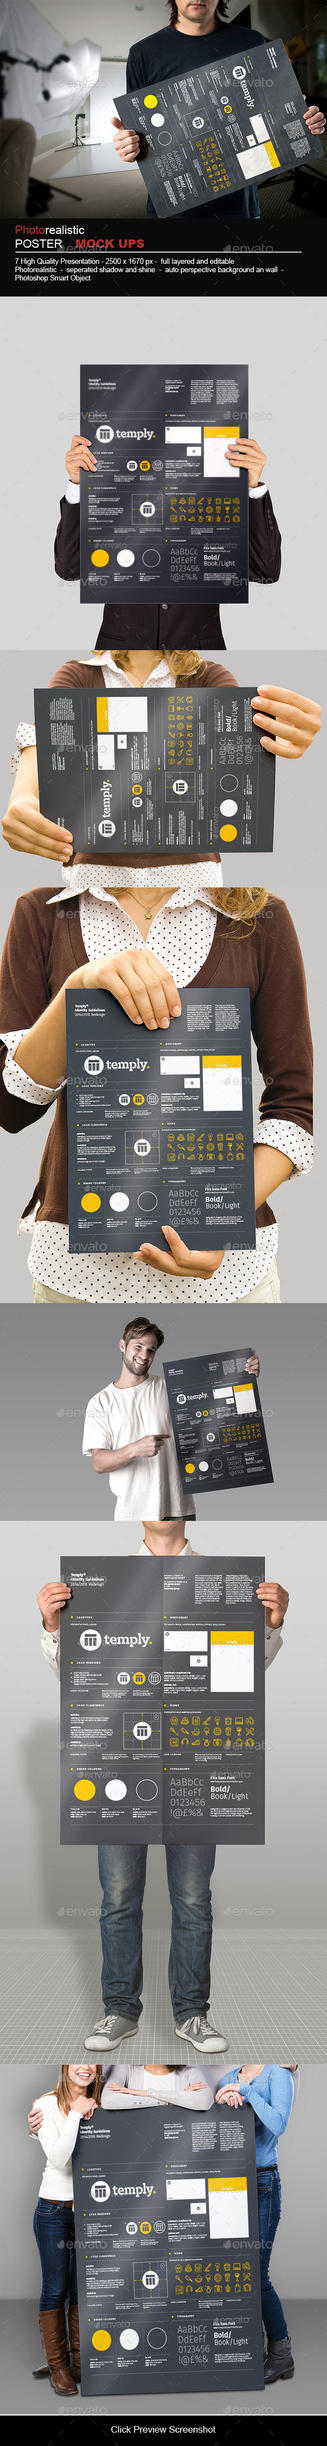 Poster Mock-Up Templates Photorealistic by calwincalwin